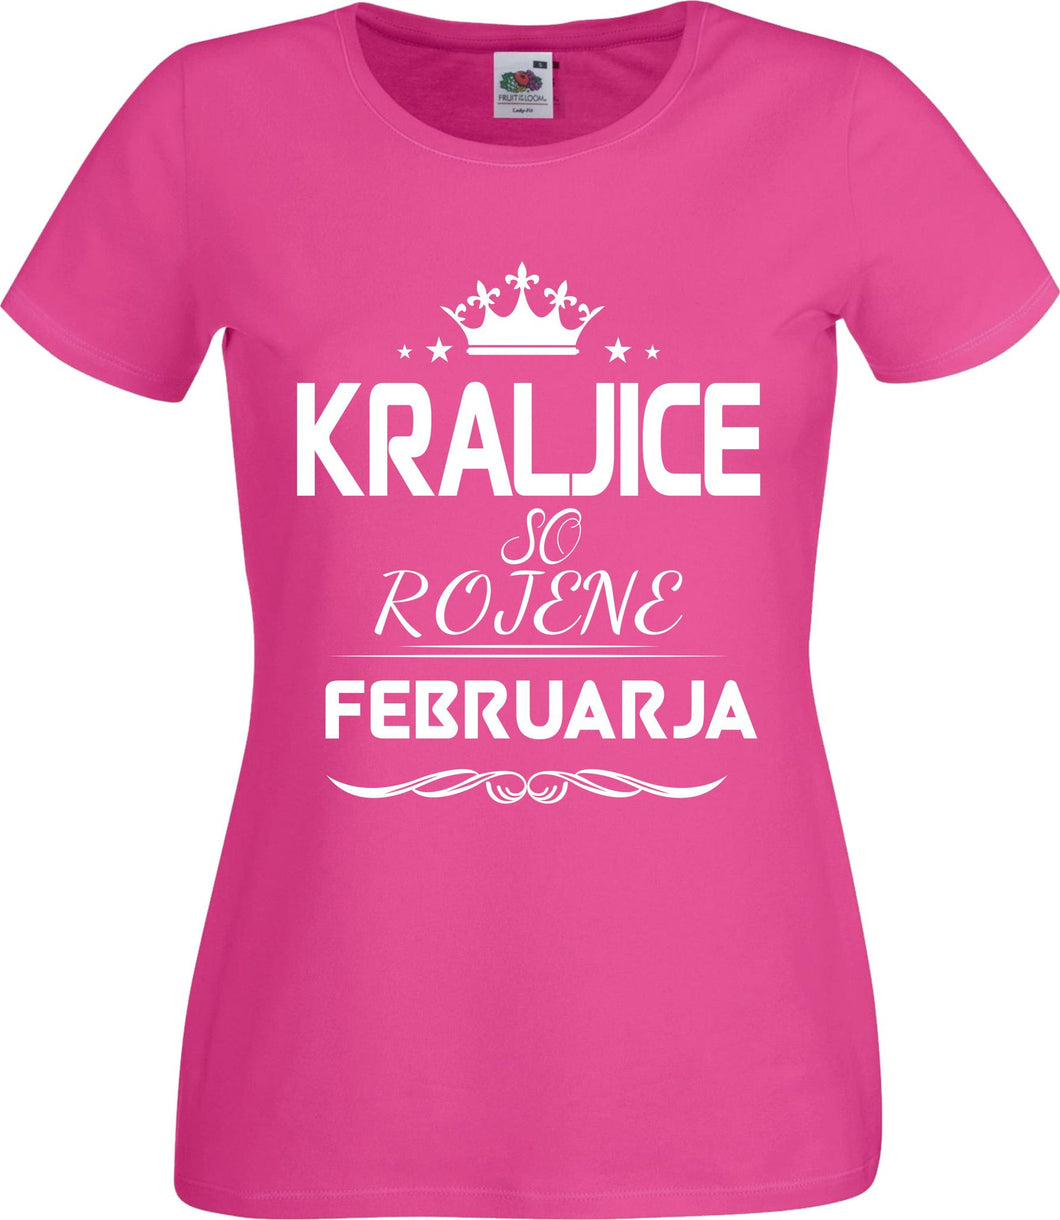 Outlet Majica Kraljice So Rojene - Februar